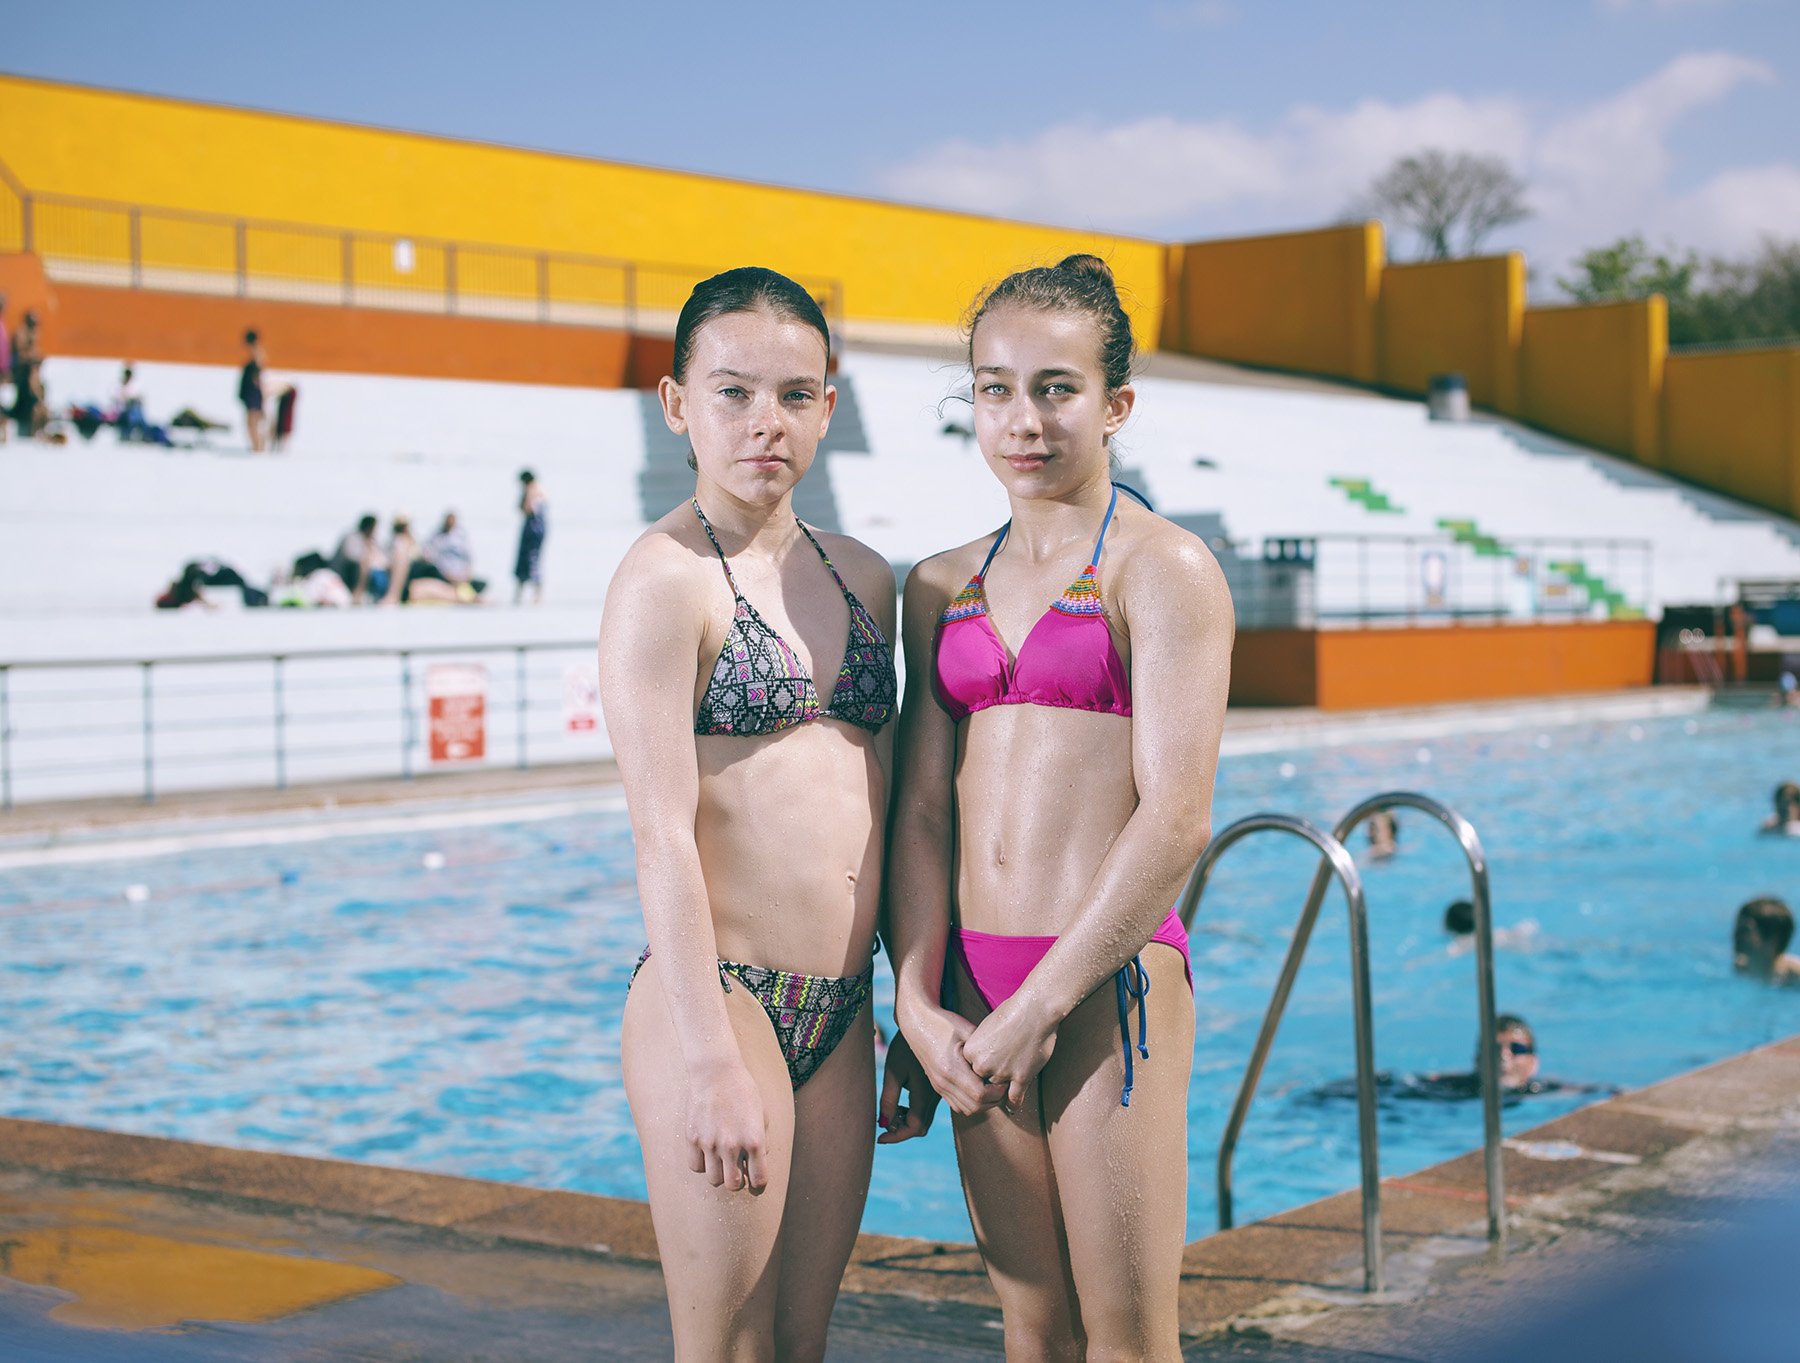 Portishead Open Air Pool Portrait